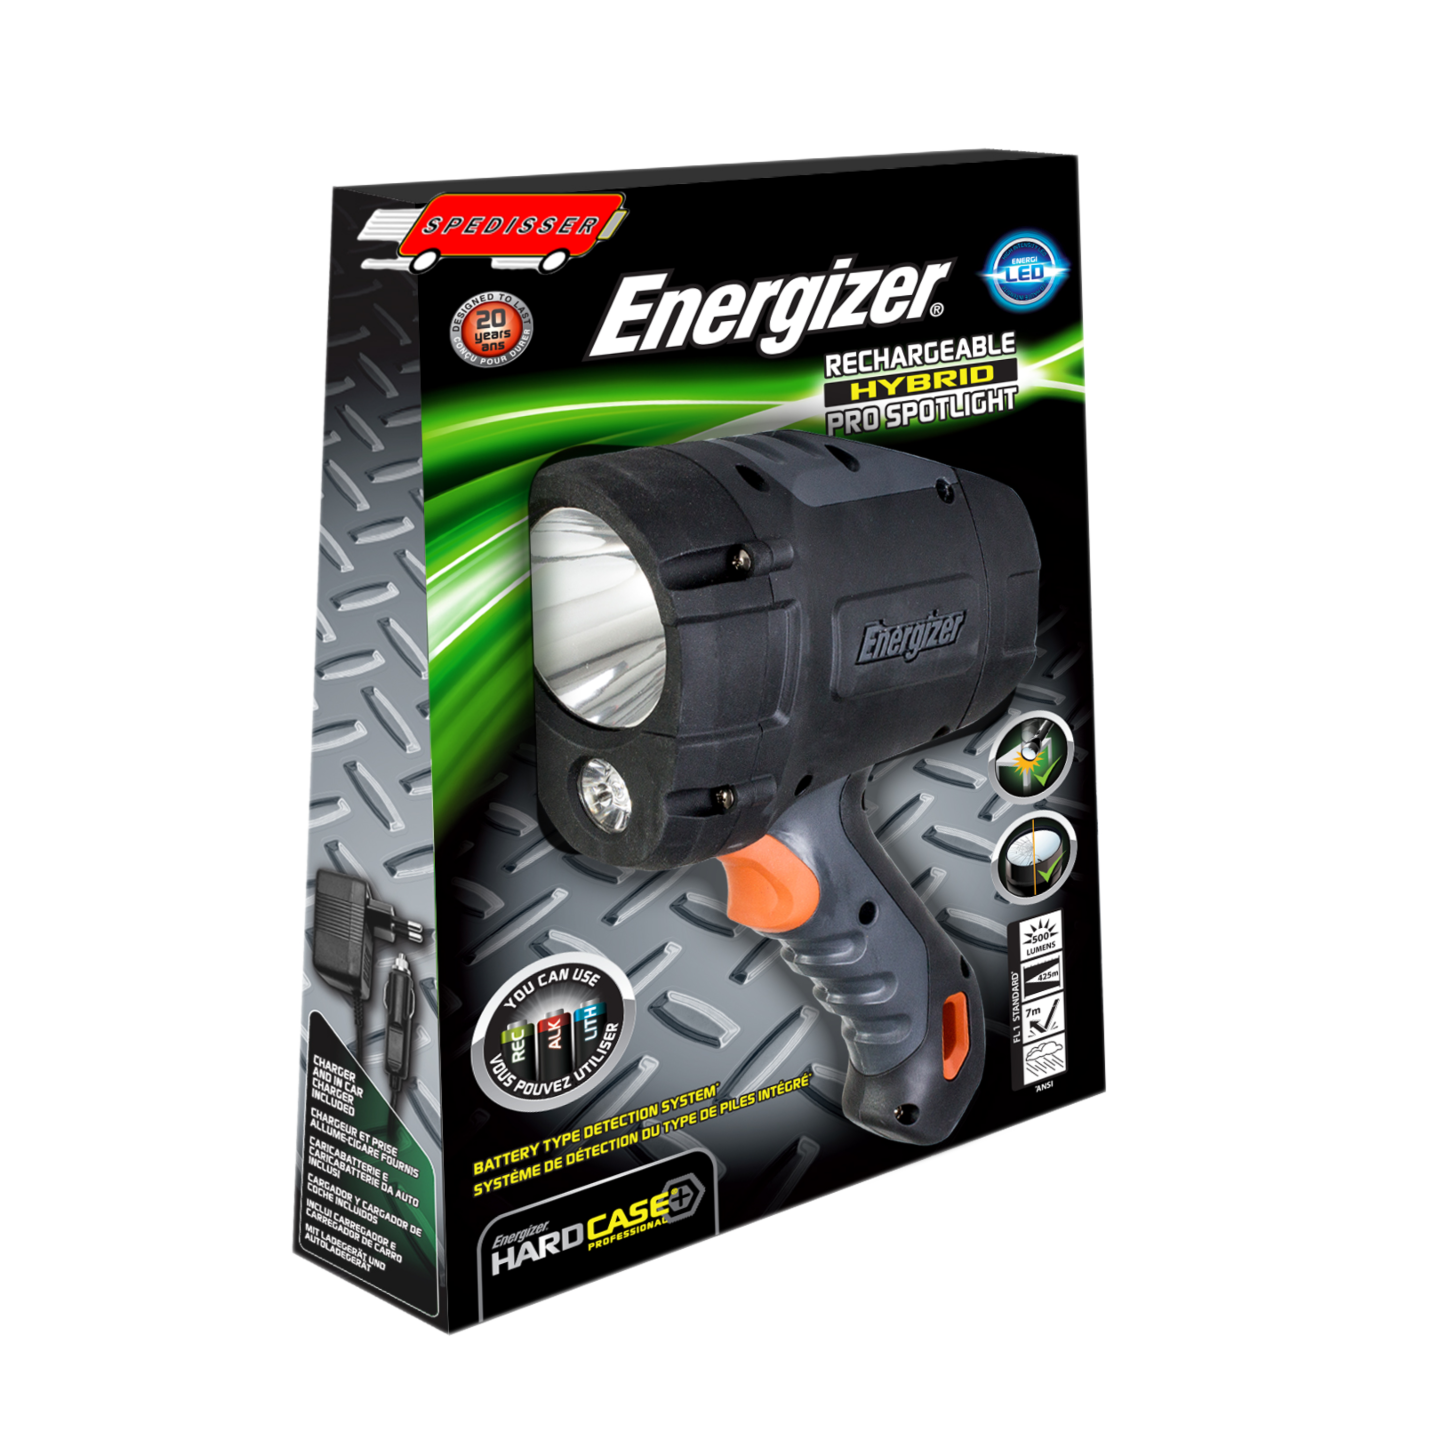 Phare Spotlight rechargeable Energizer + 6 accus R6 + chargeurs